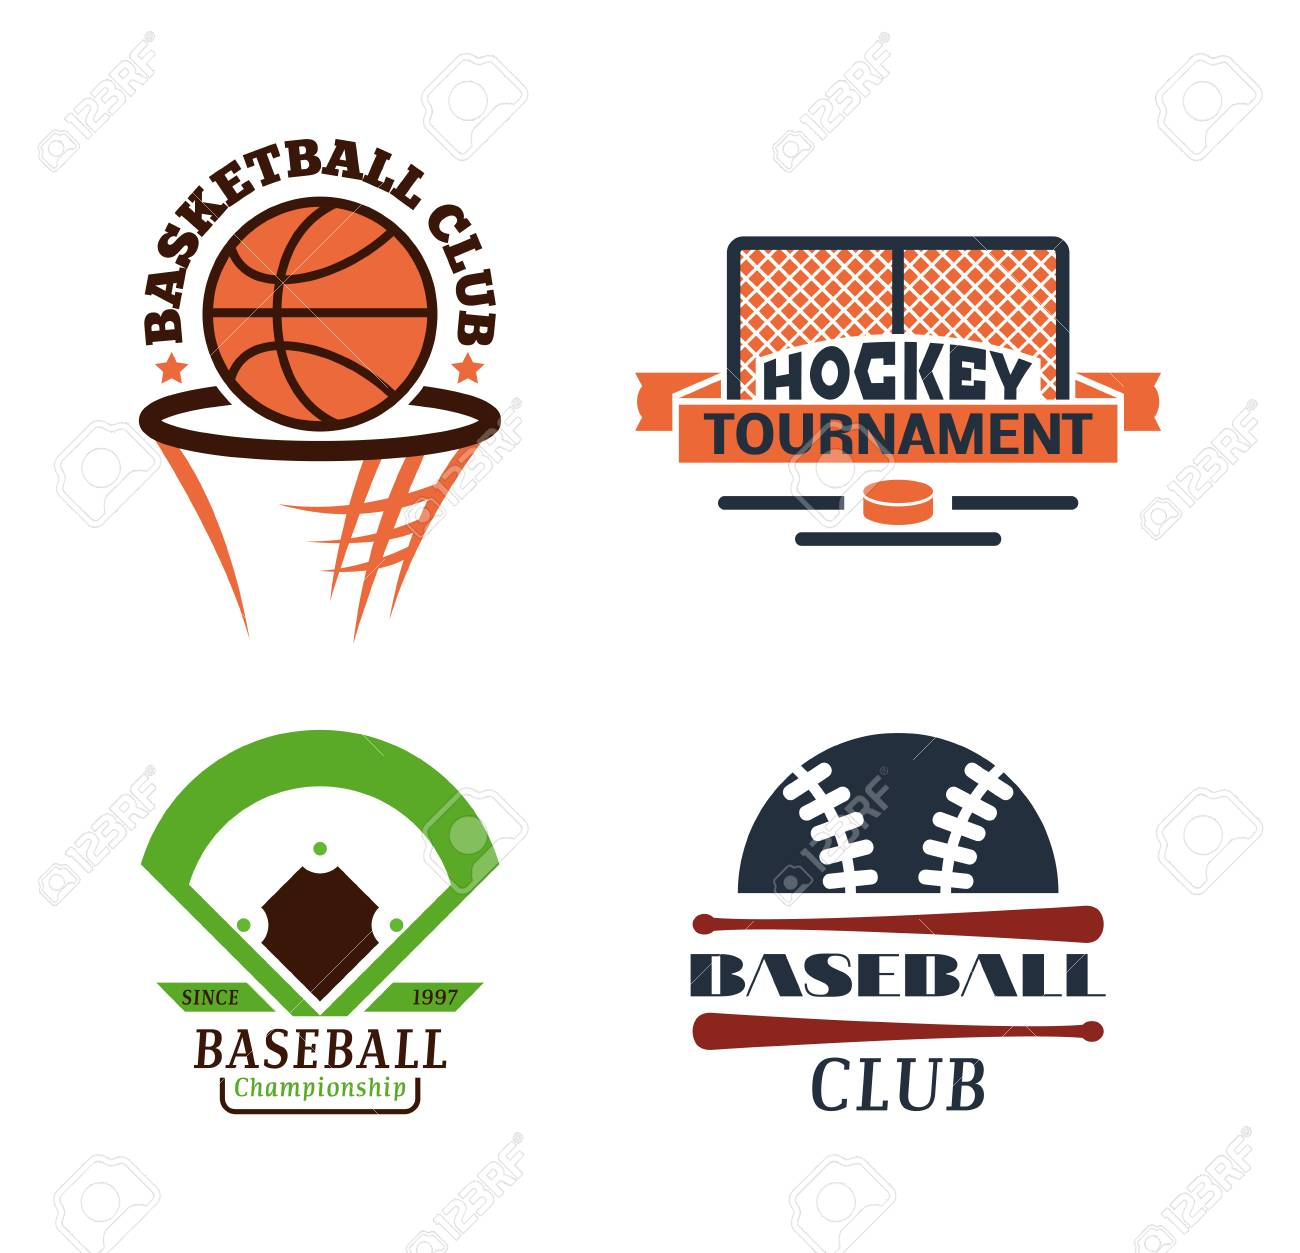 Template For Sports Teams With Different Balls And Symbols